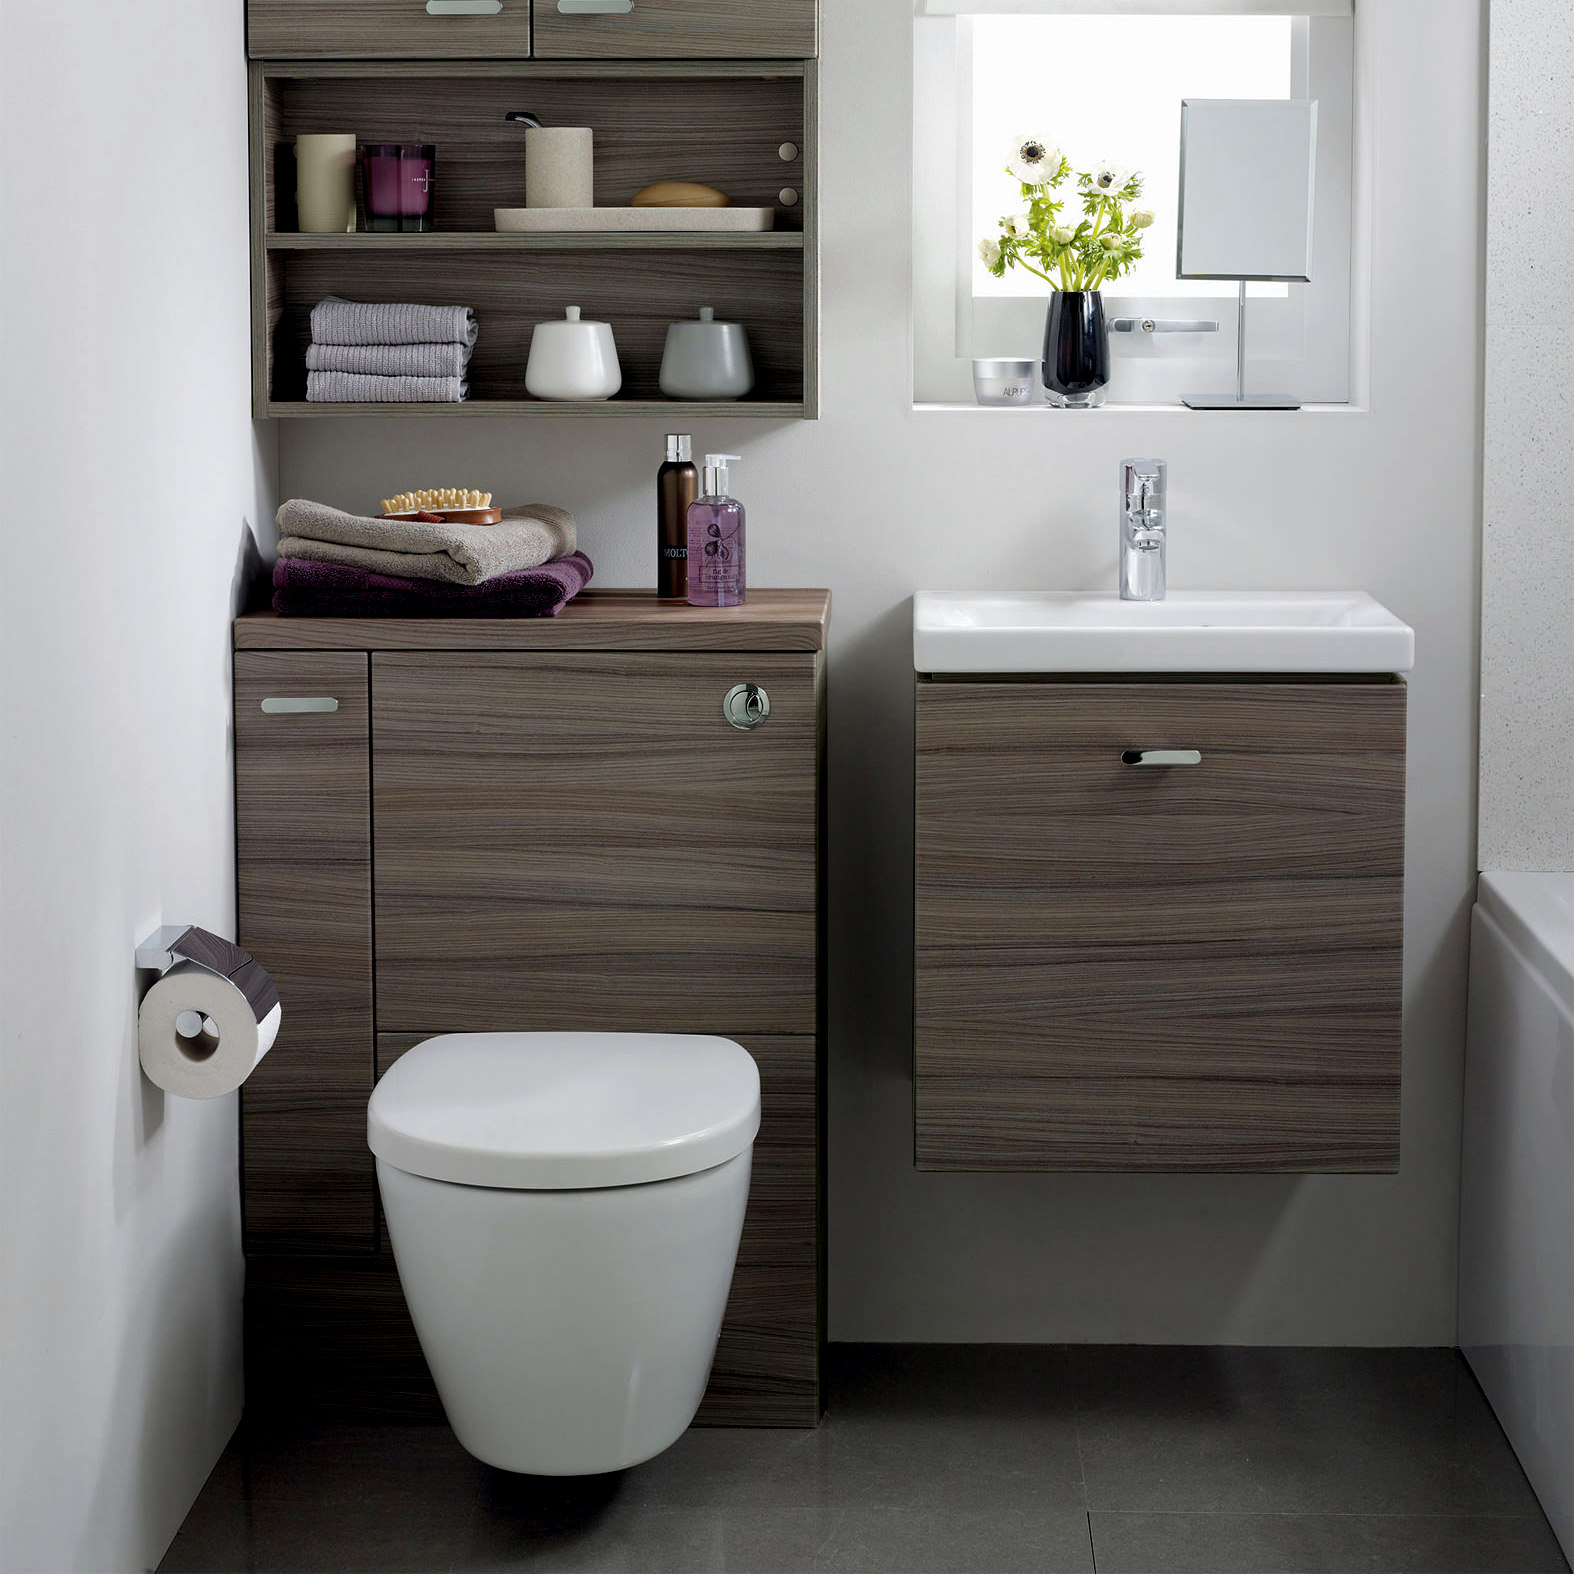 ideal standard modern styles at affordable prices : uk bathrooms